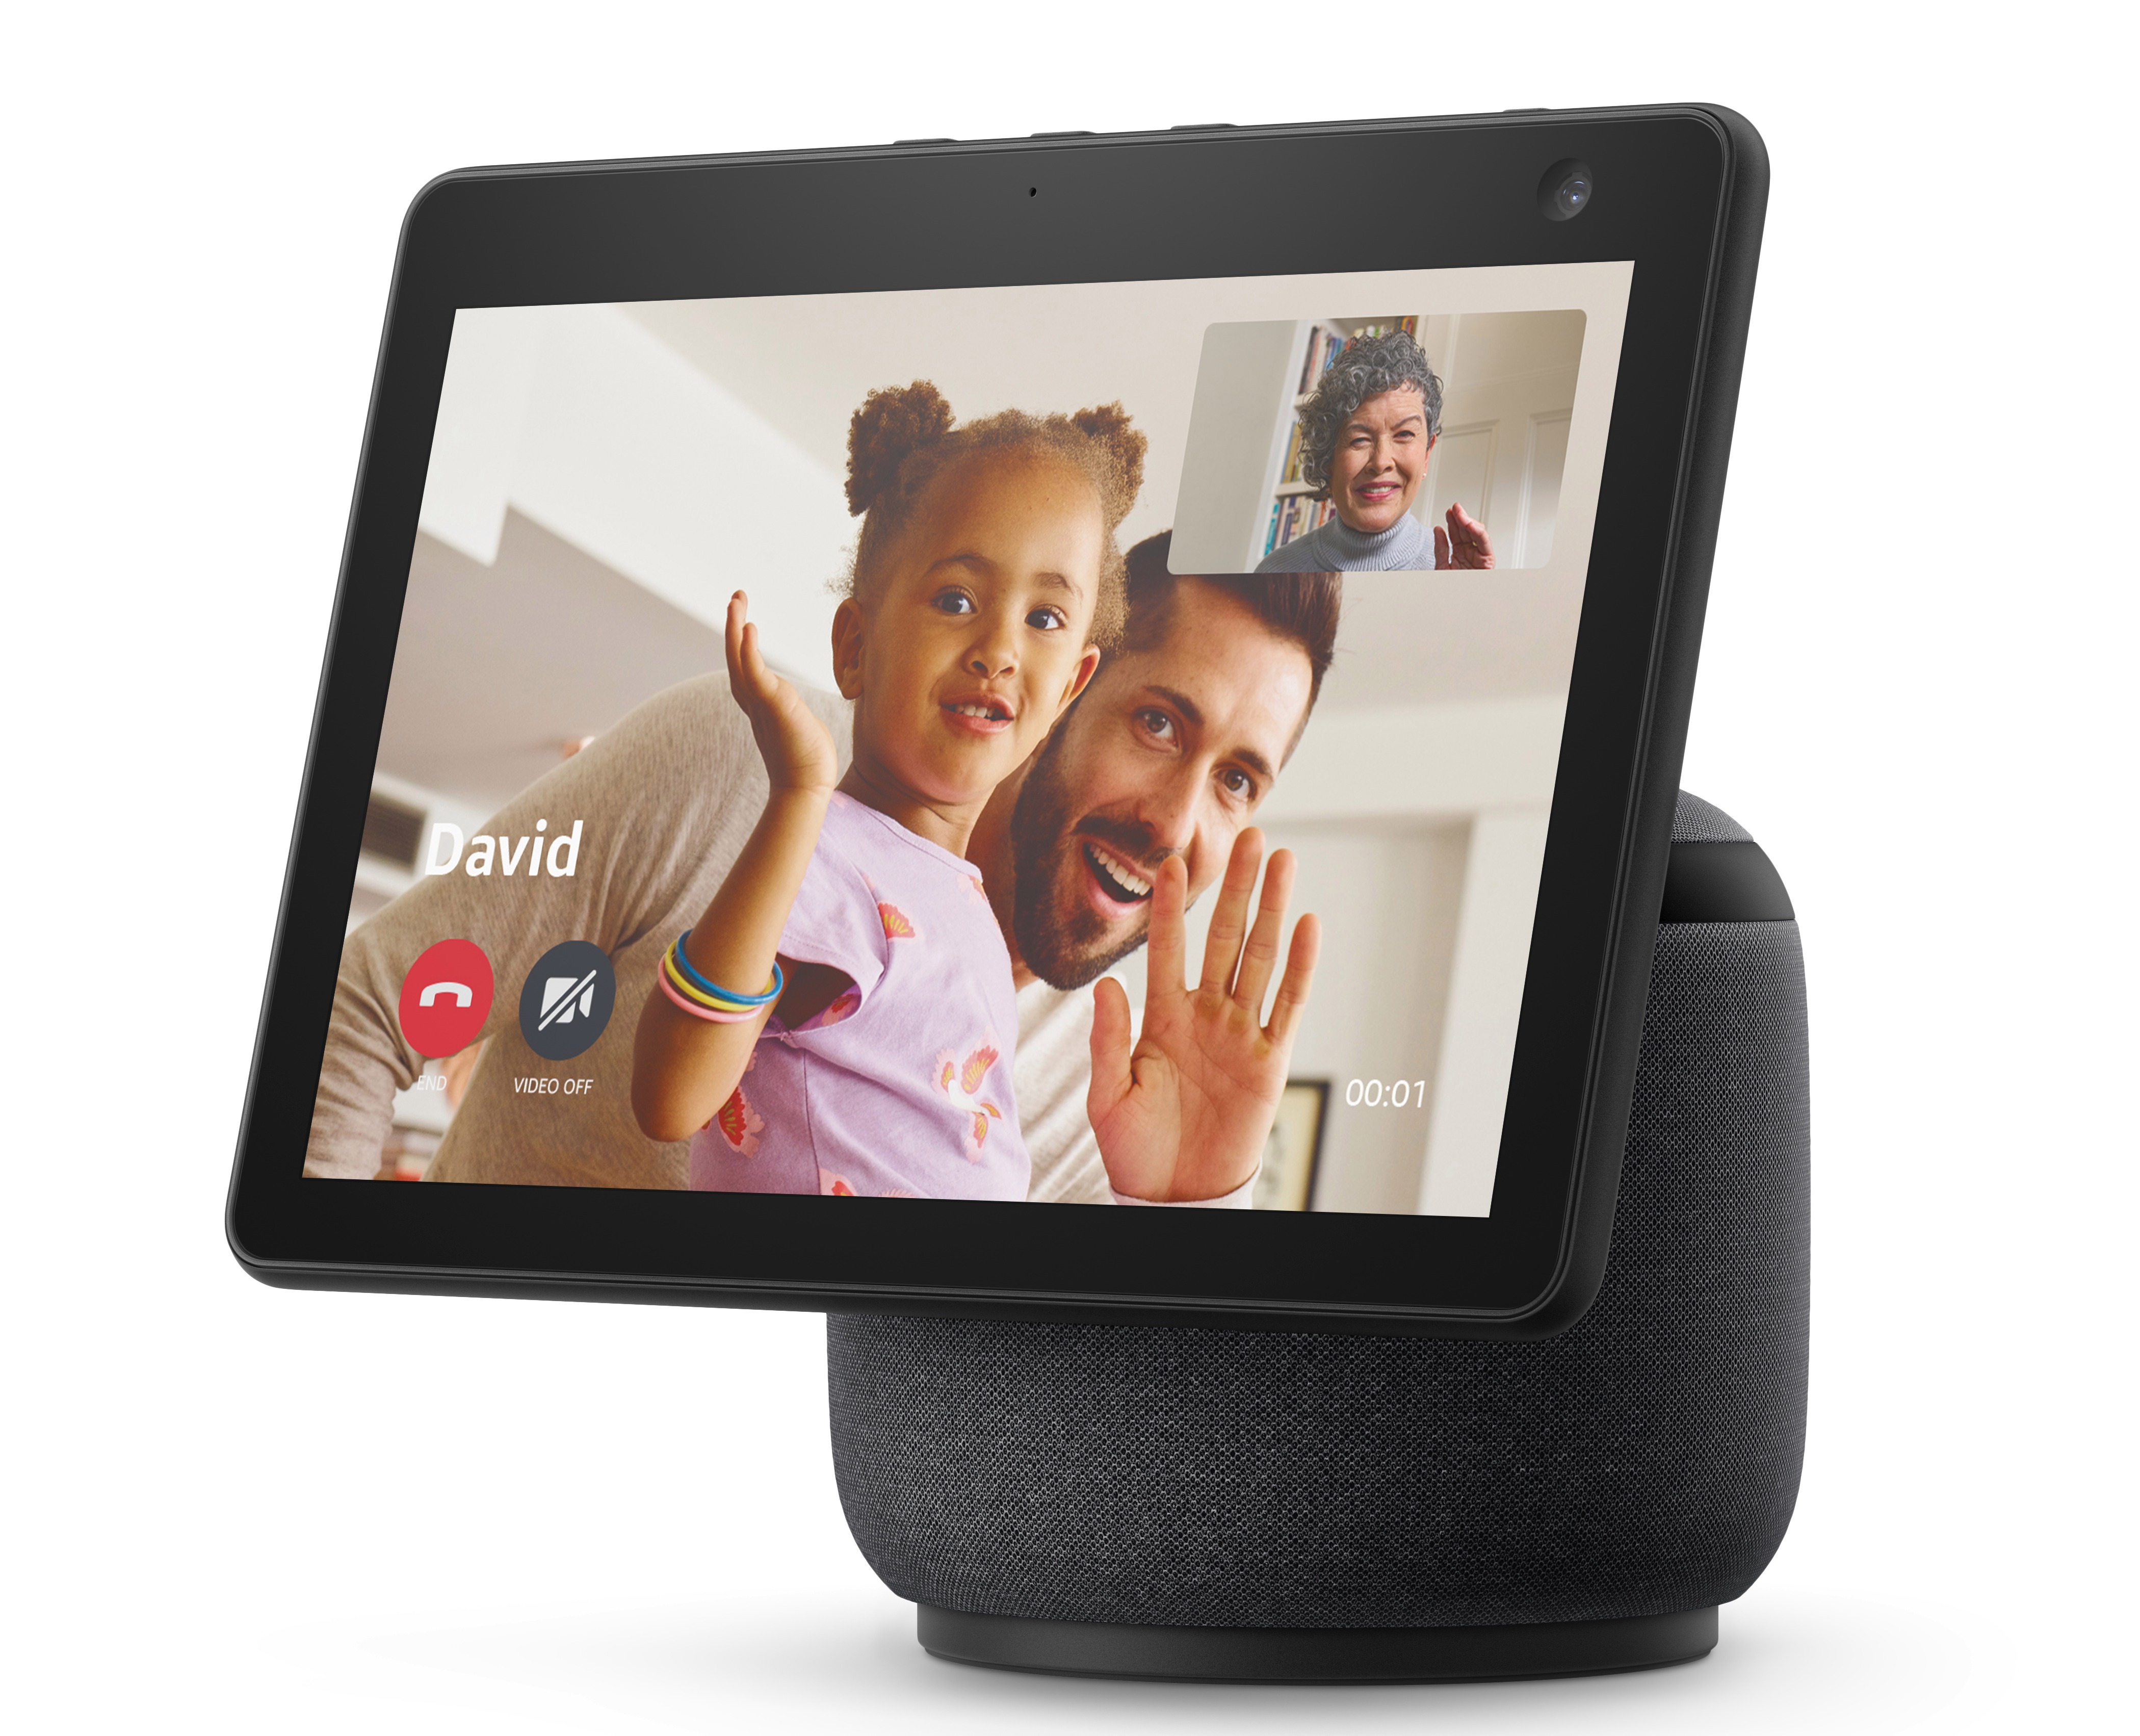 The Echo Show series is Alexa-enabled and includes a display and camera